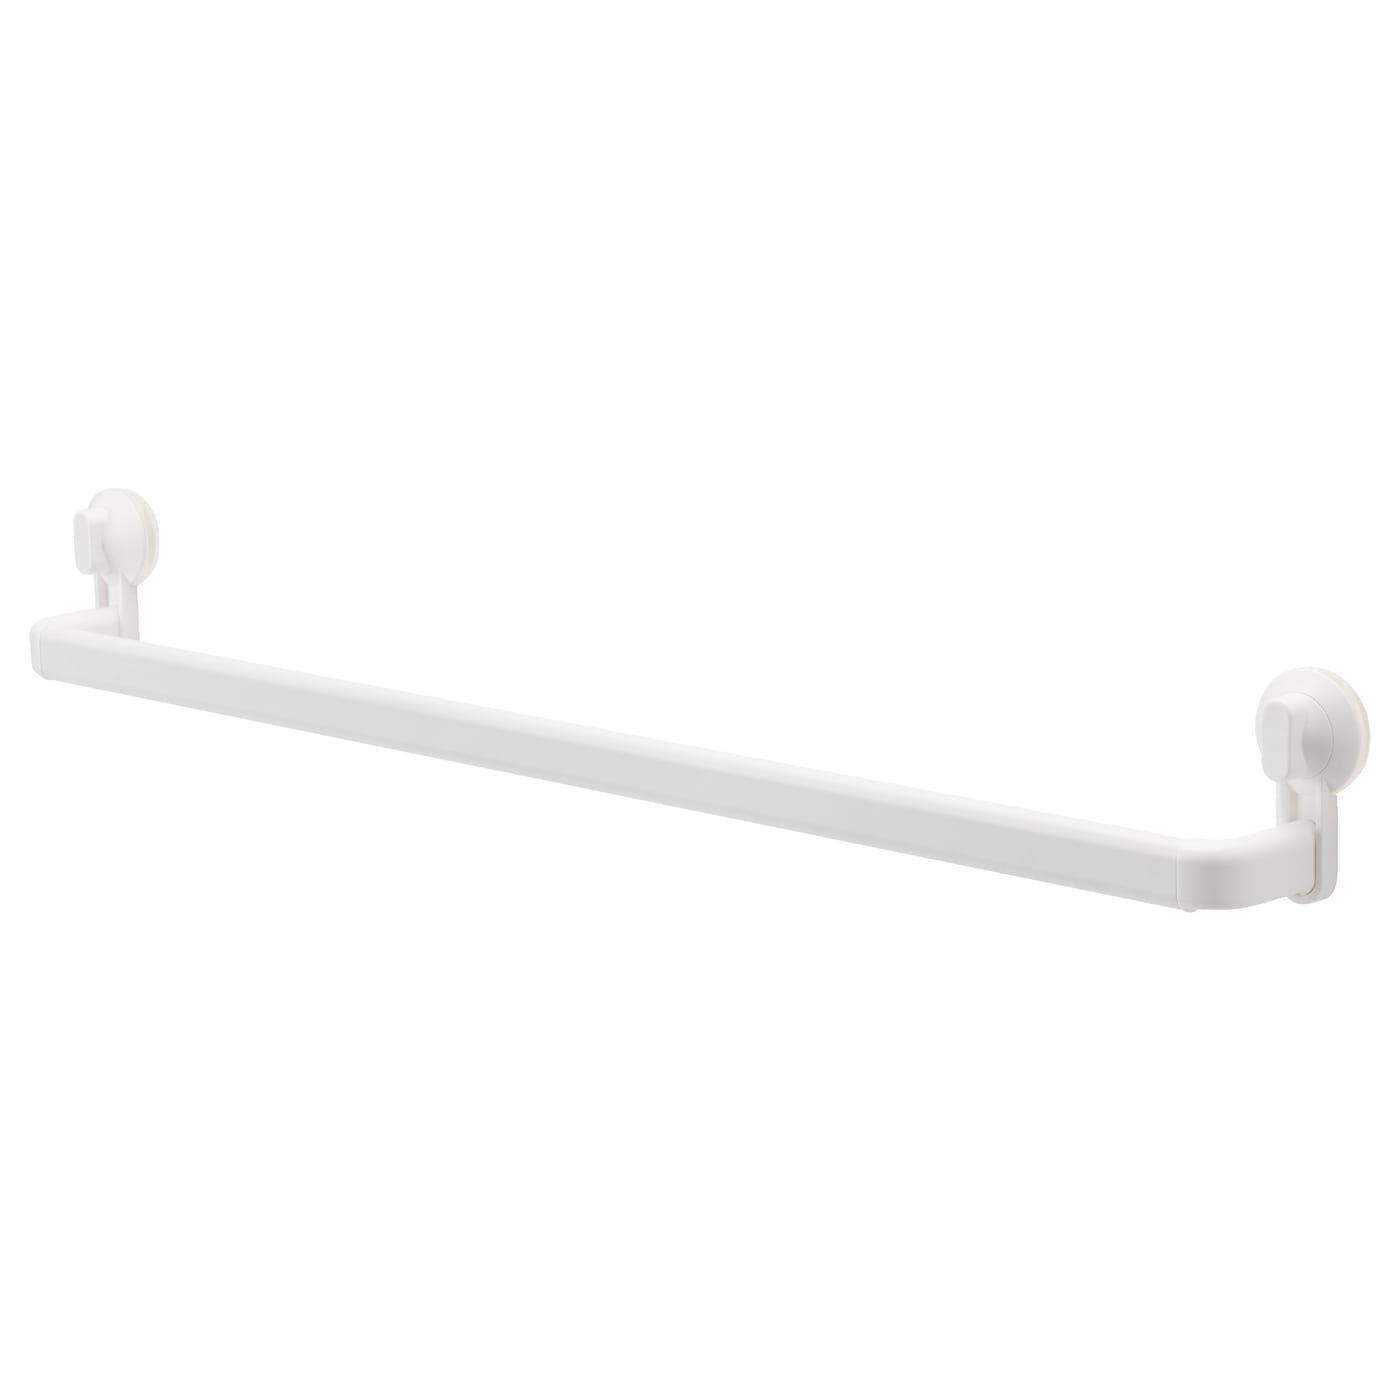 Ikea Stugvik Towel Rack With Suction Cup